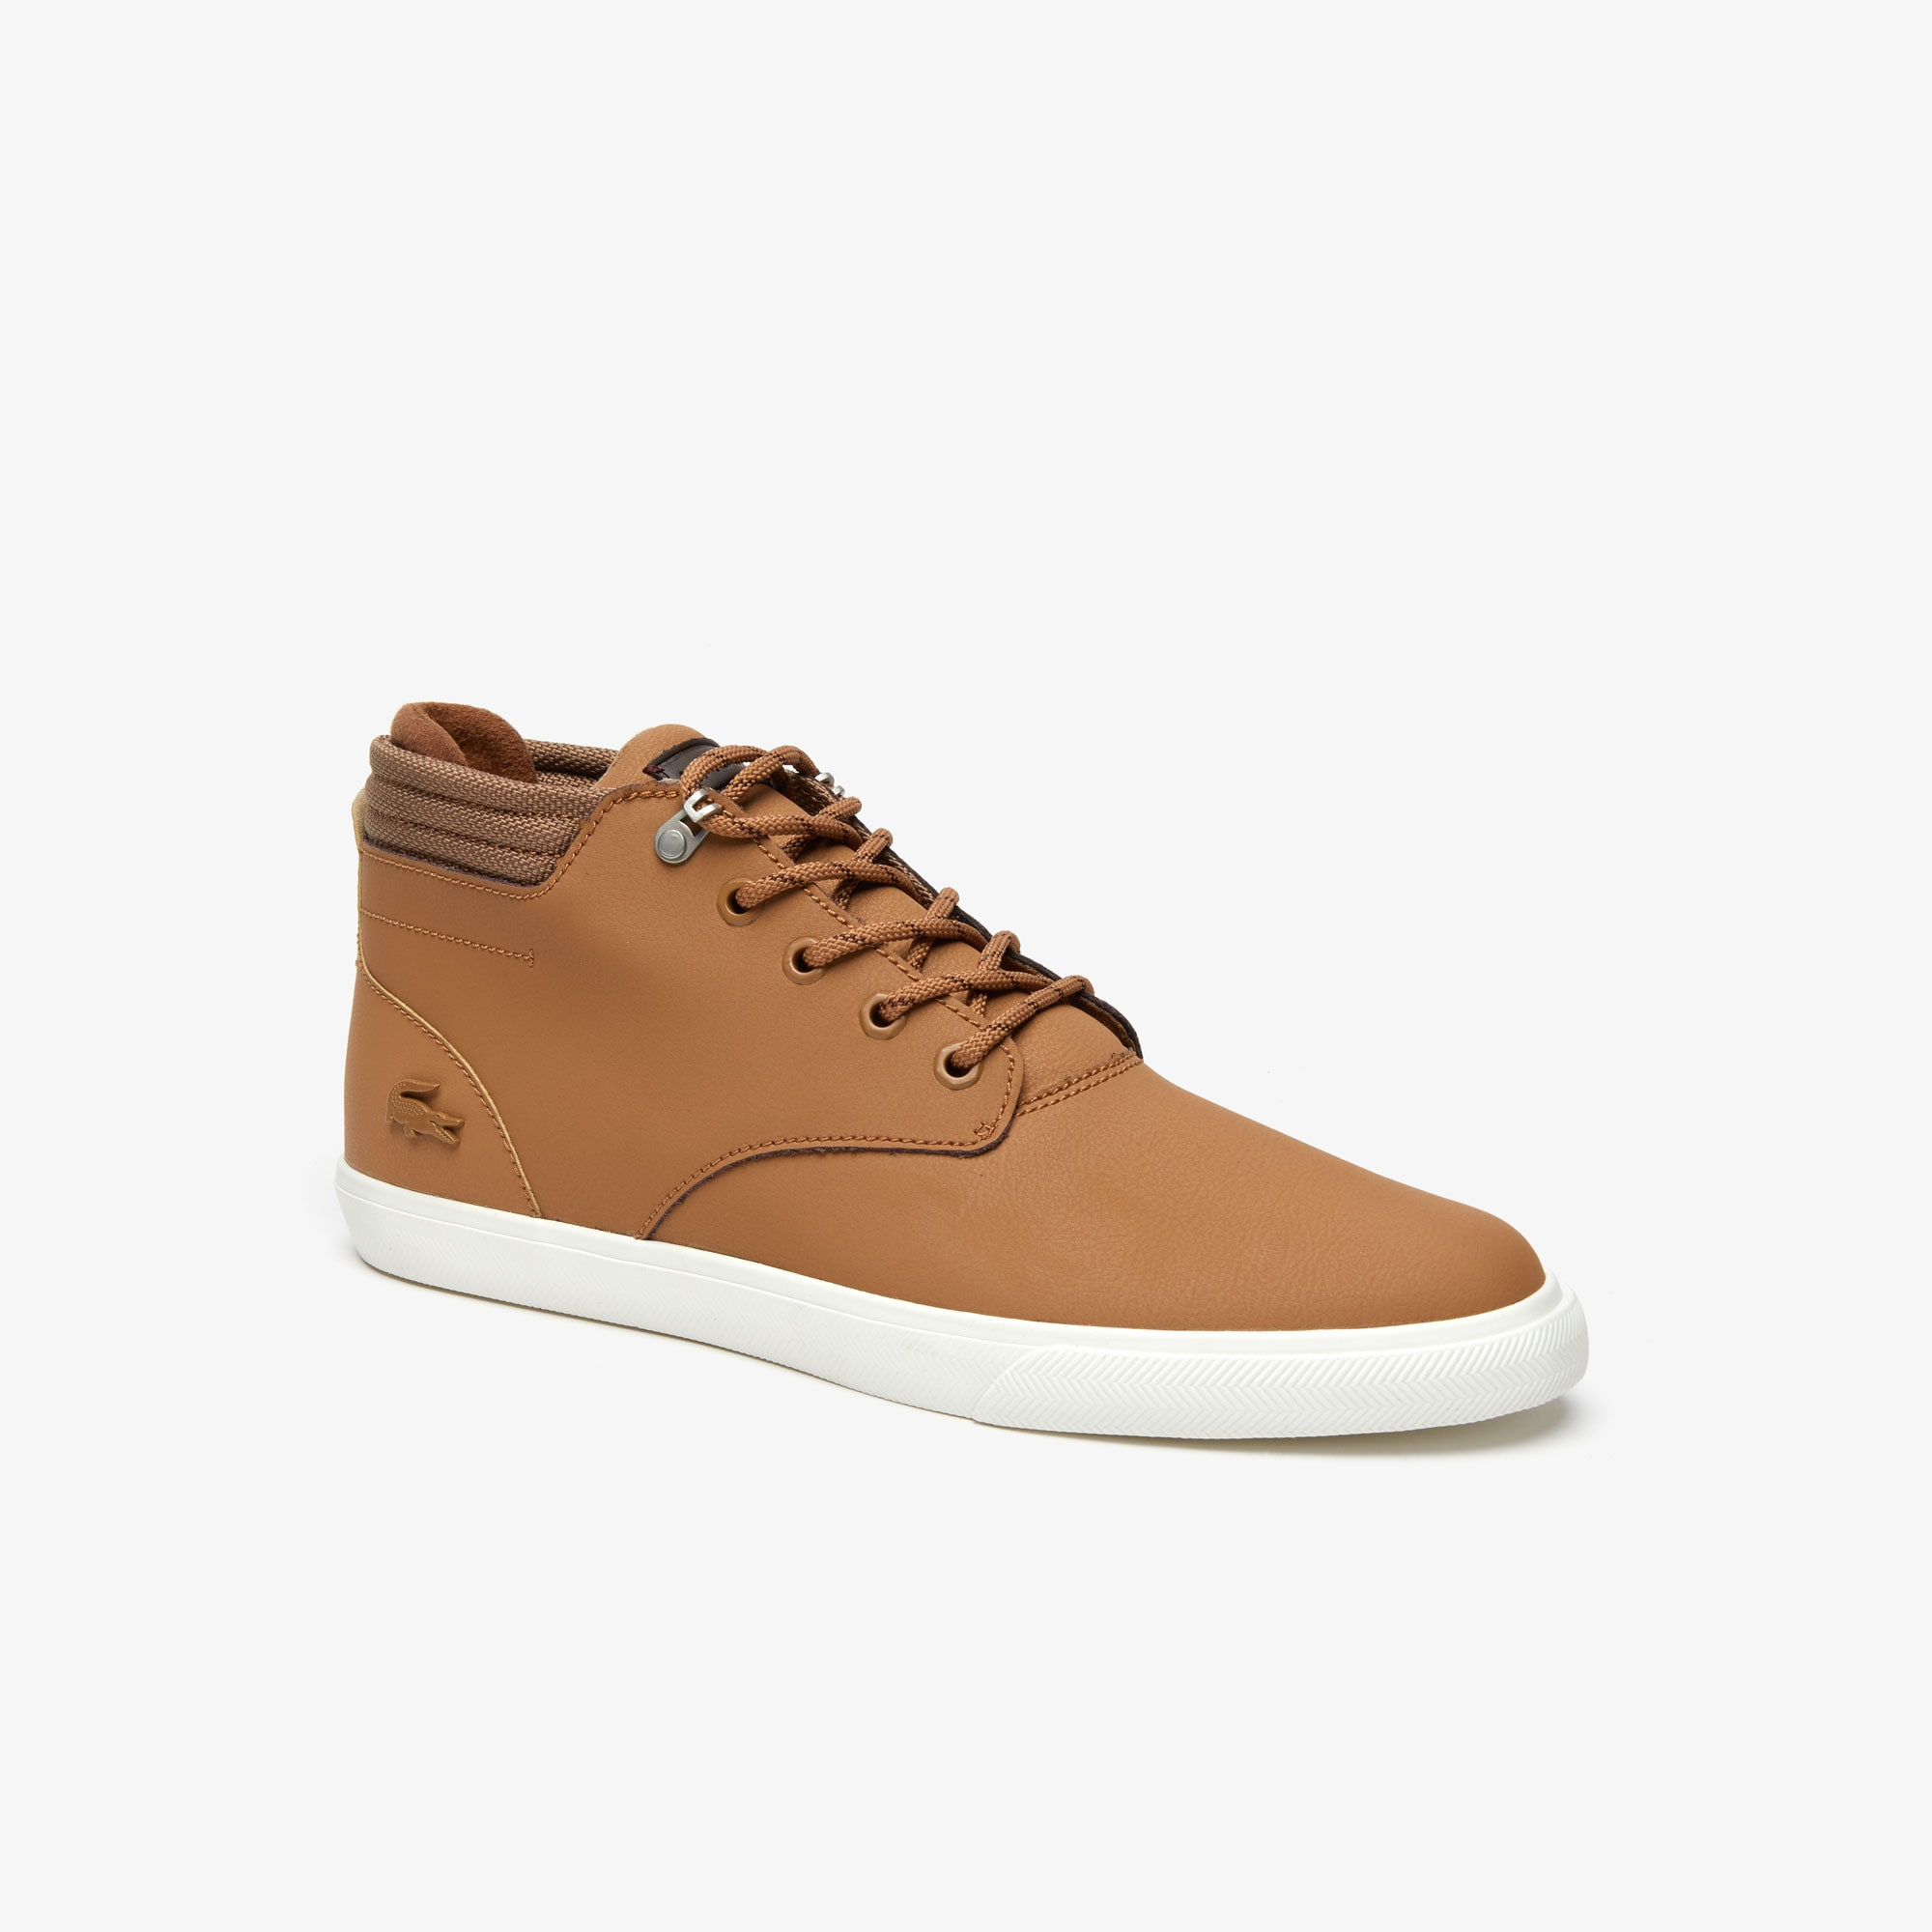 3b3238f9954 Boots and Chukkas collection | Men's Shoes | LACOSTE